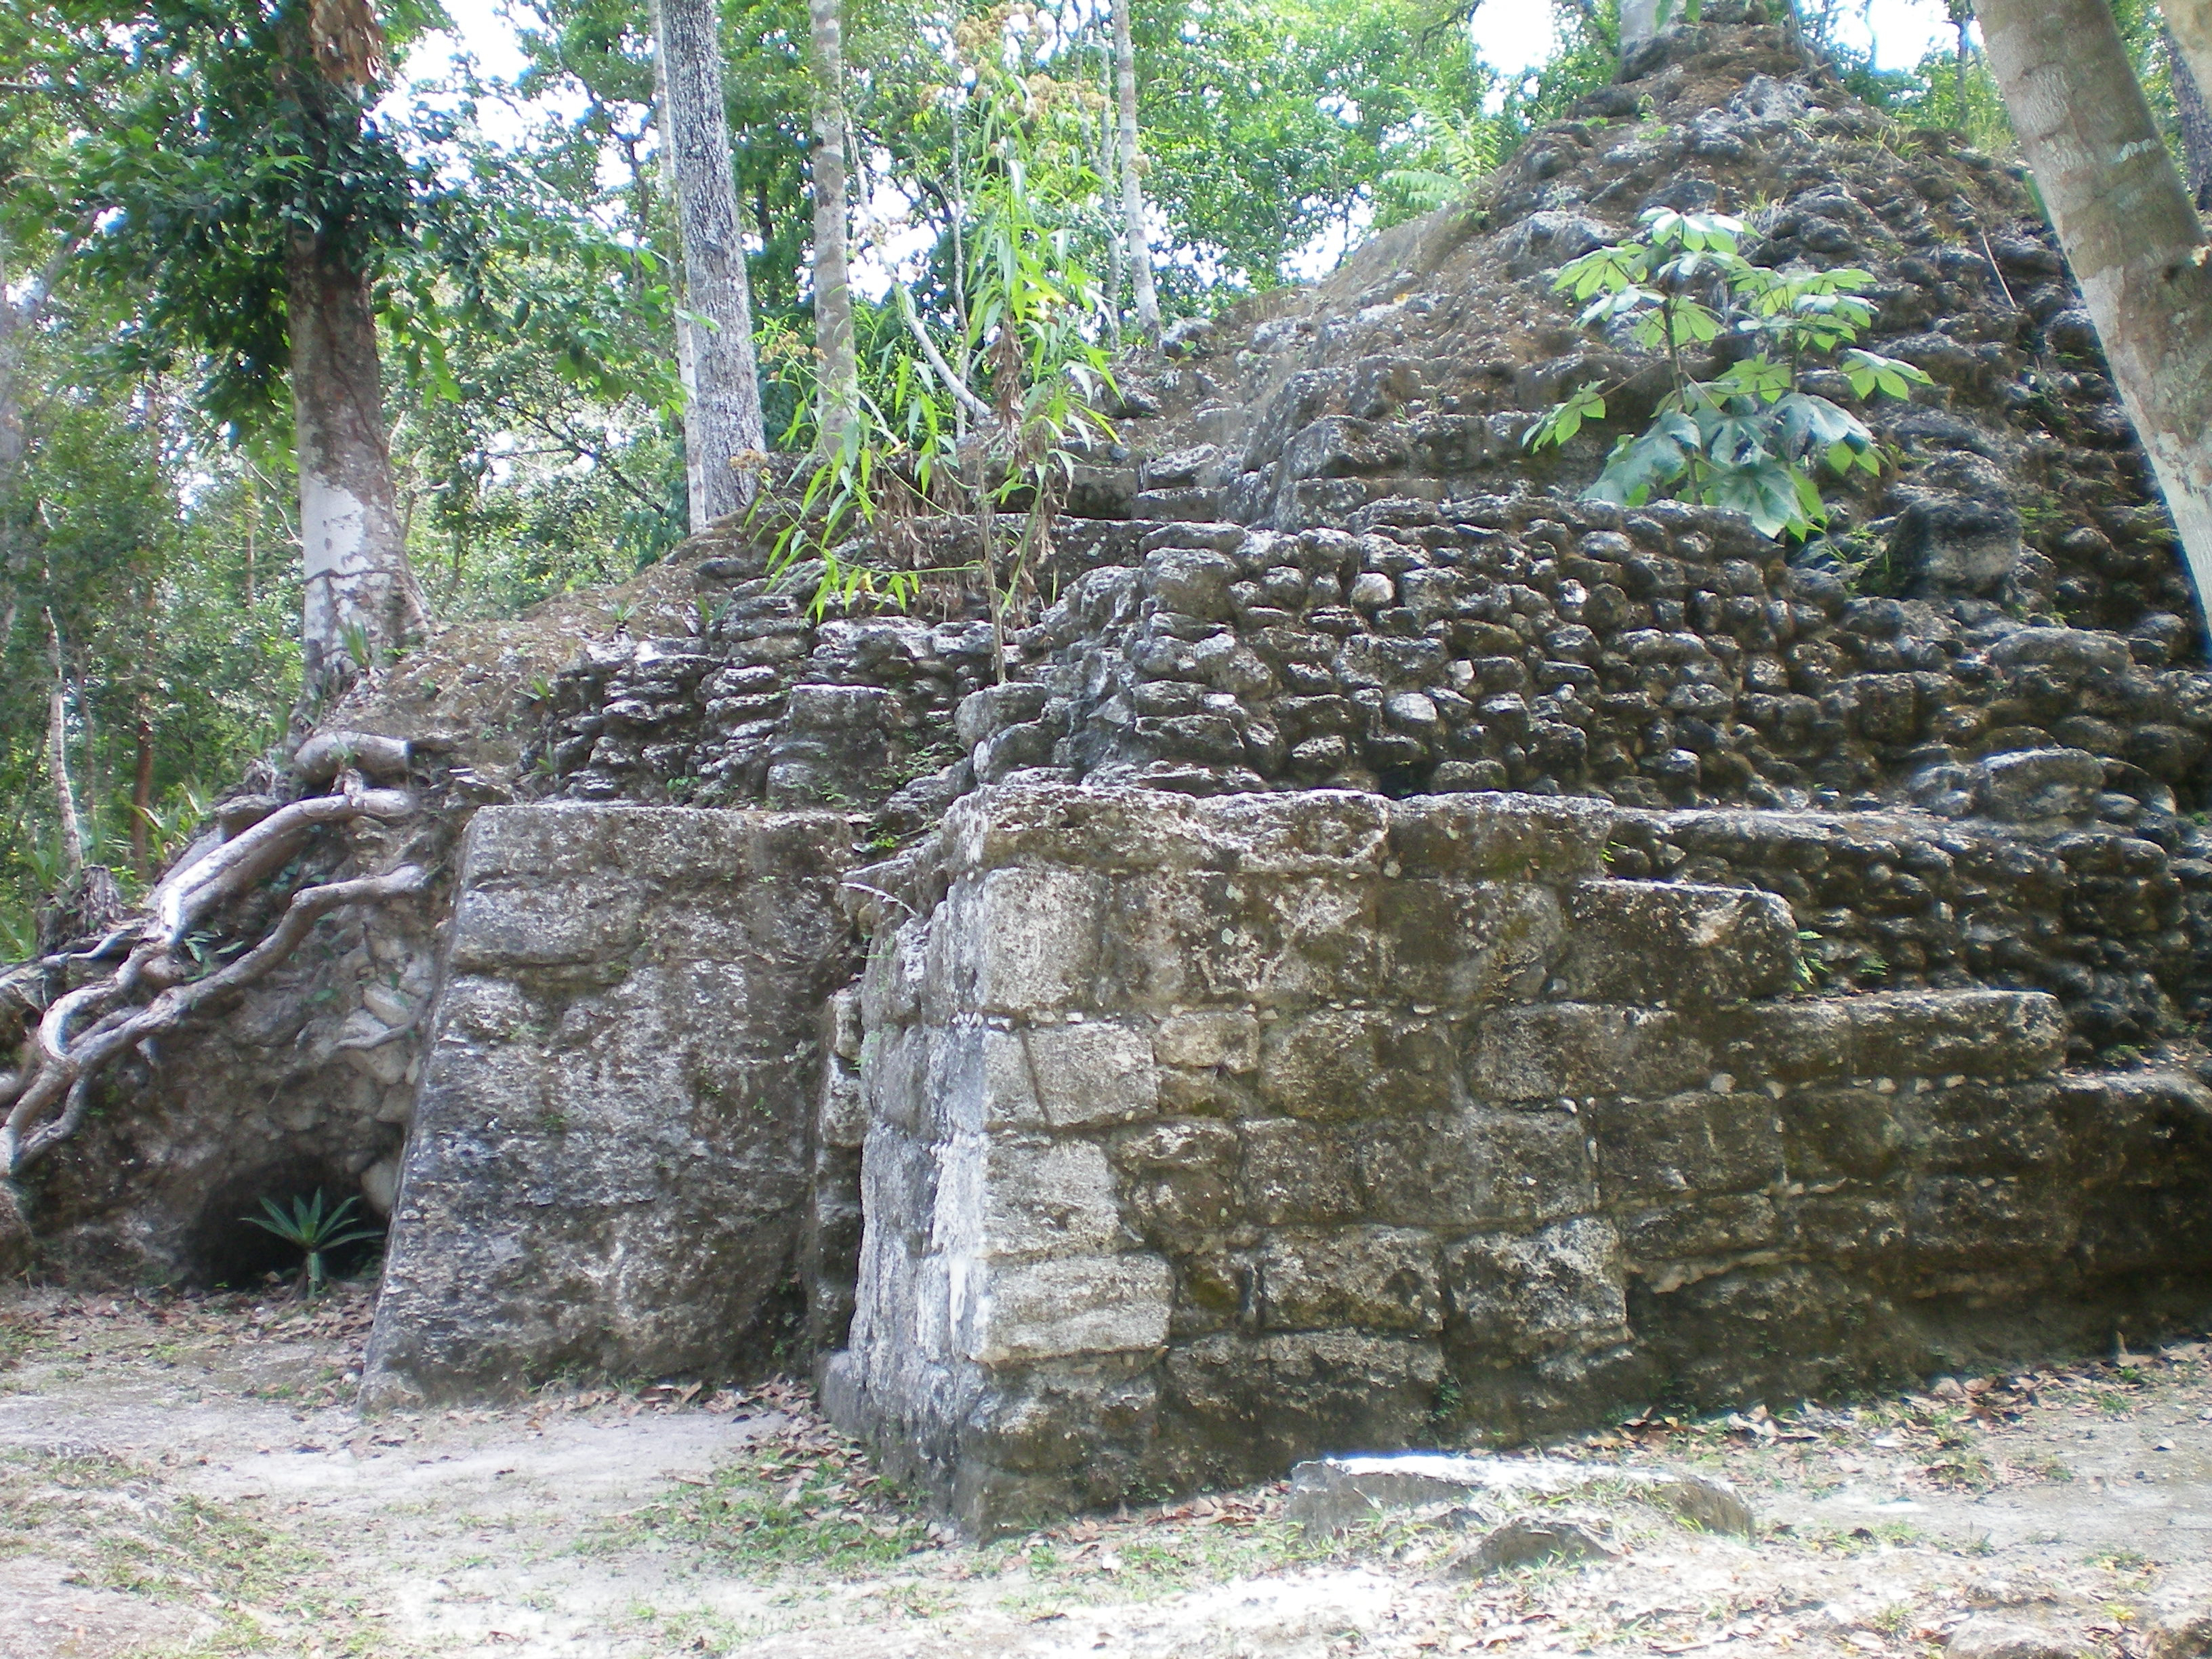 A stone architecture in the forest at Uaxactún Archeology Site in Guatemala